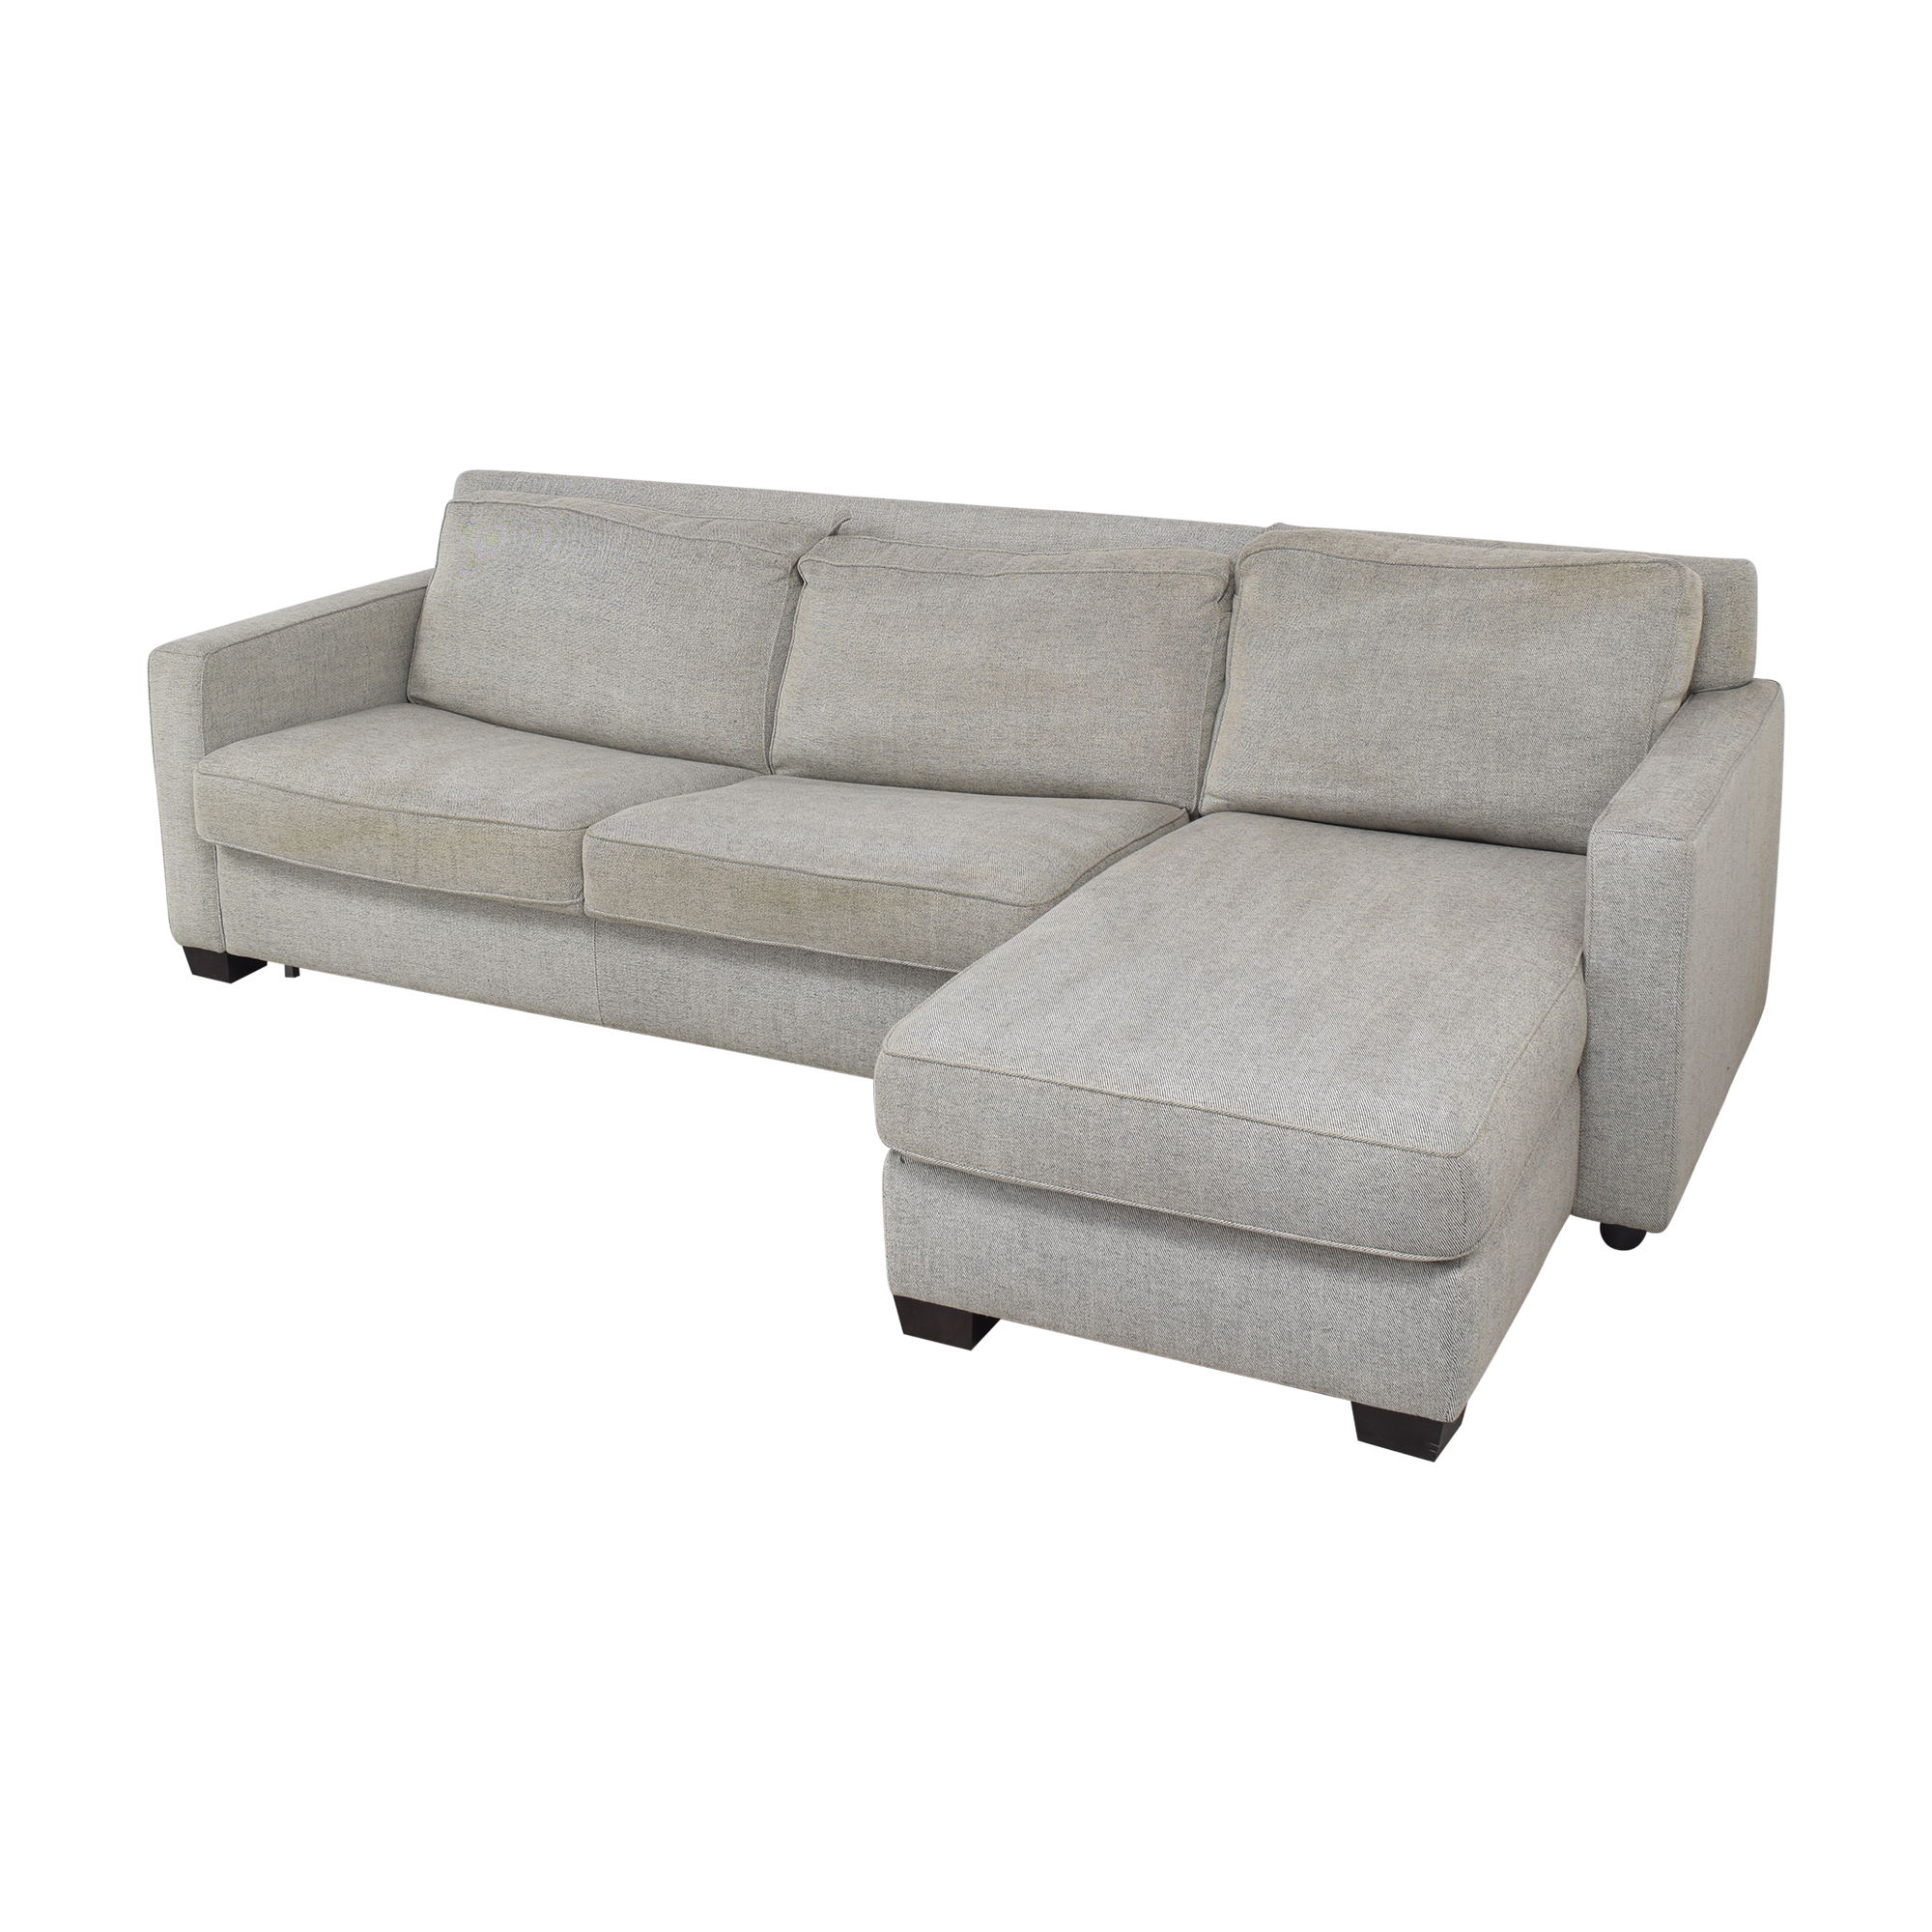 West Elm Henry Two Piece Full Sleeper Sectional Sofa with Storage sale